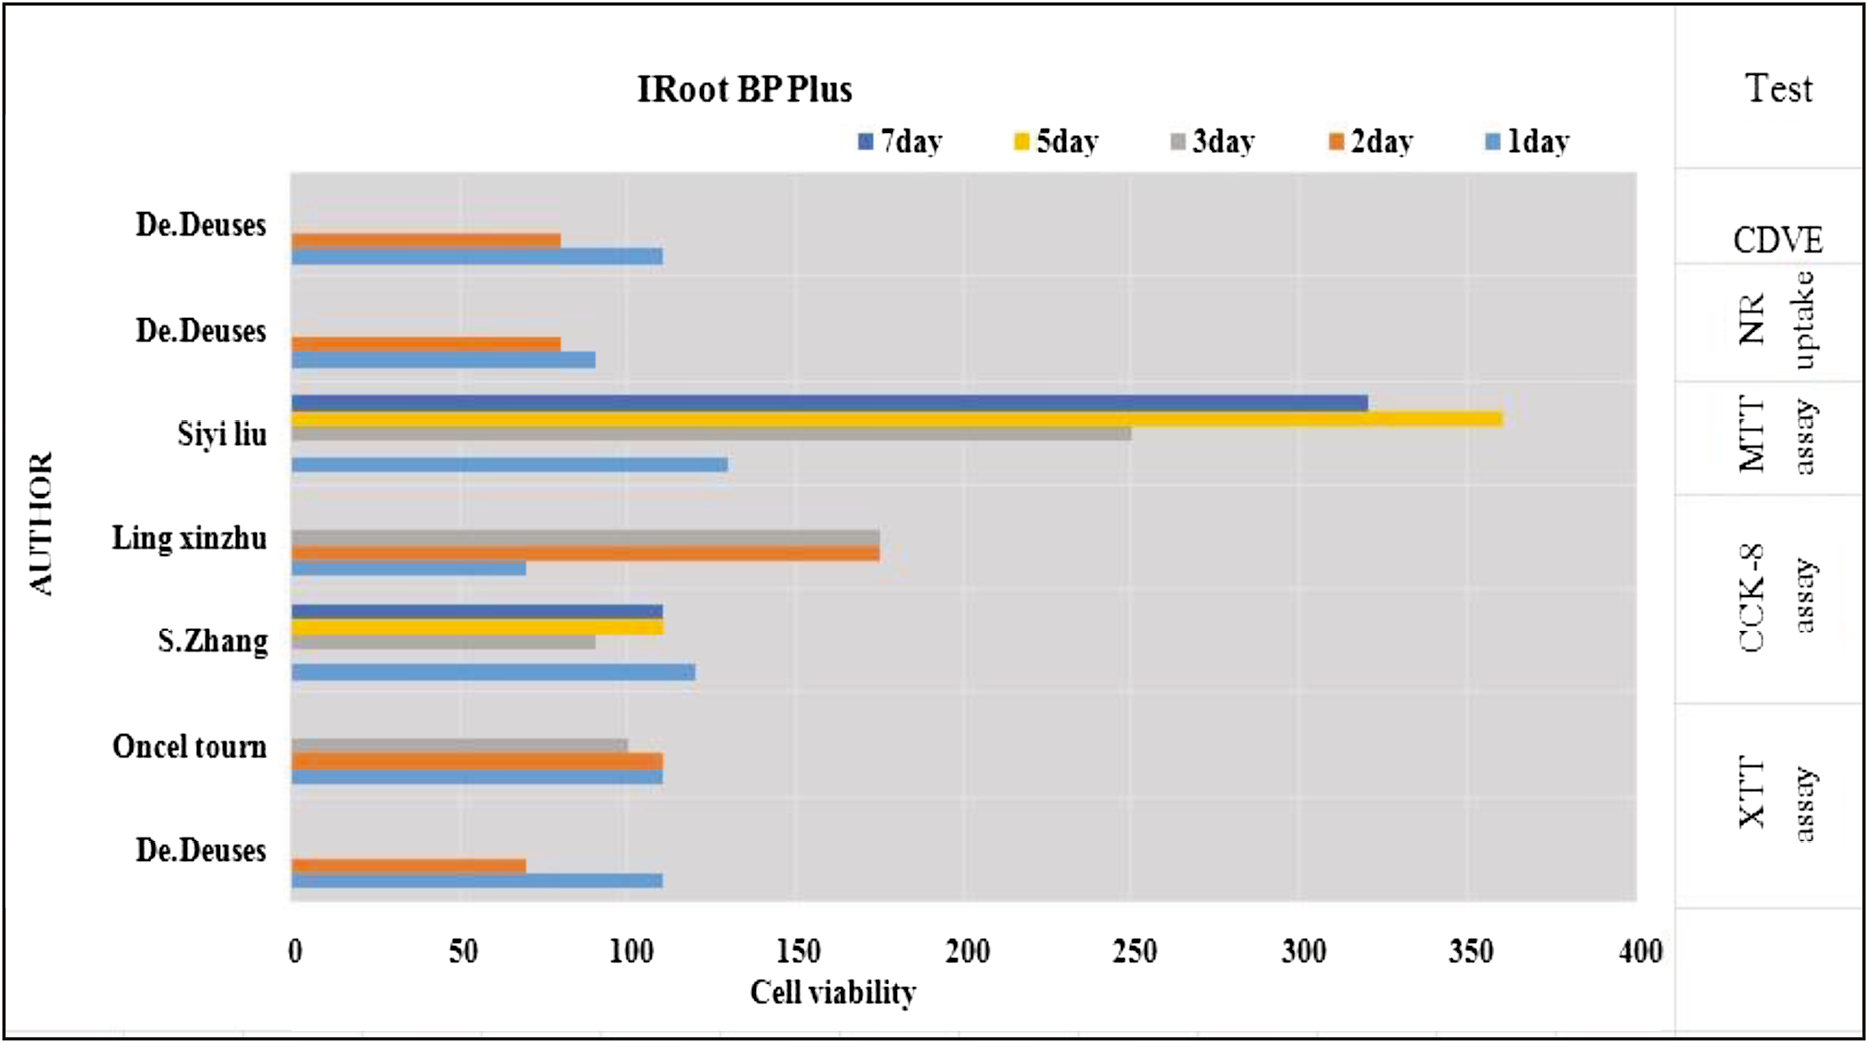 Figure 2: Description of cytotoxicity of the material iRoot BP Plus